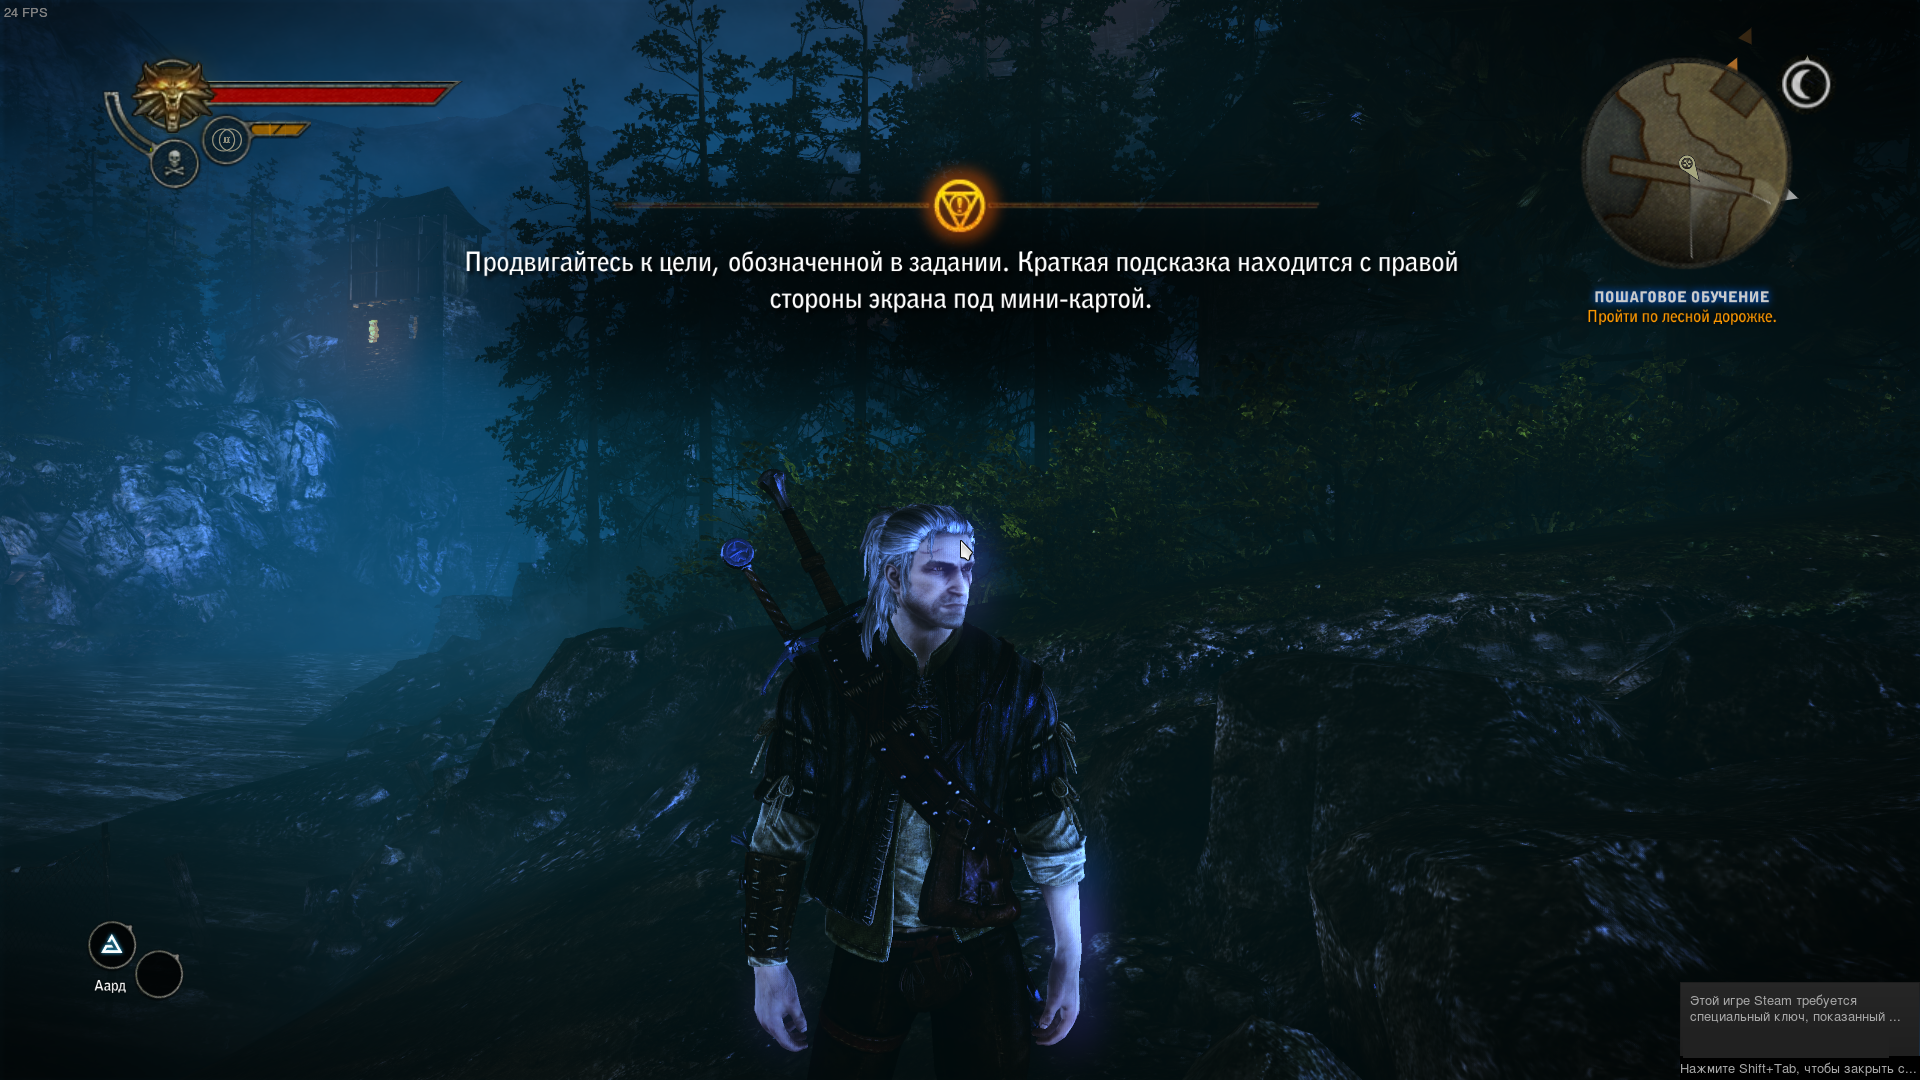 witcher2.png